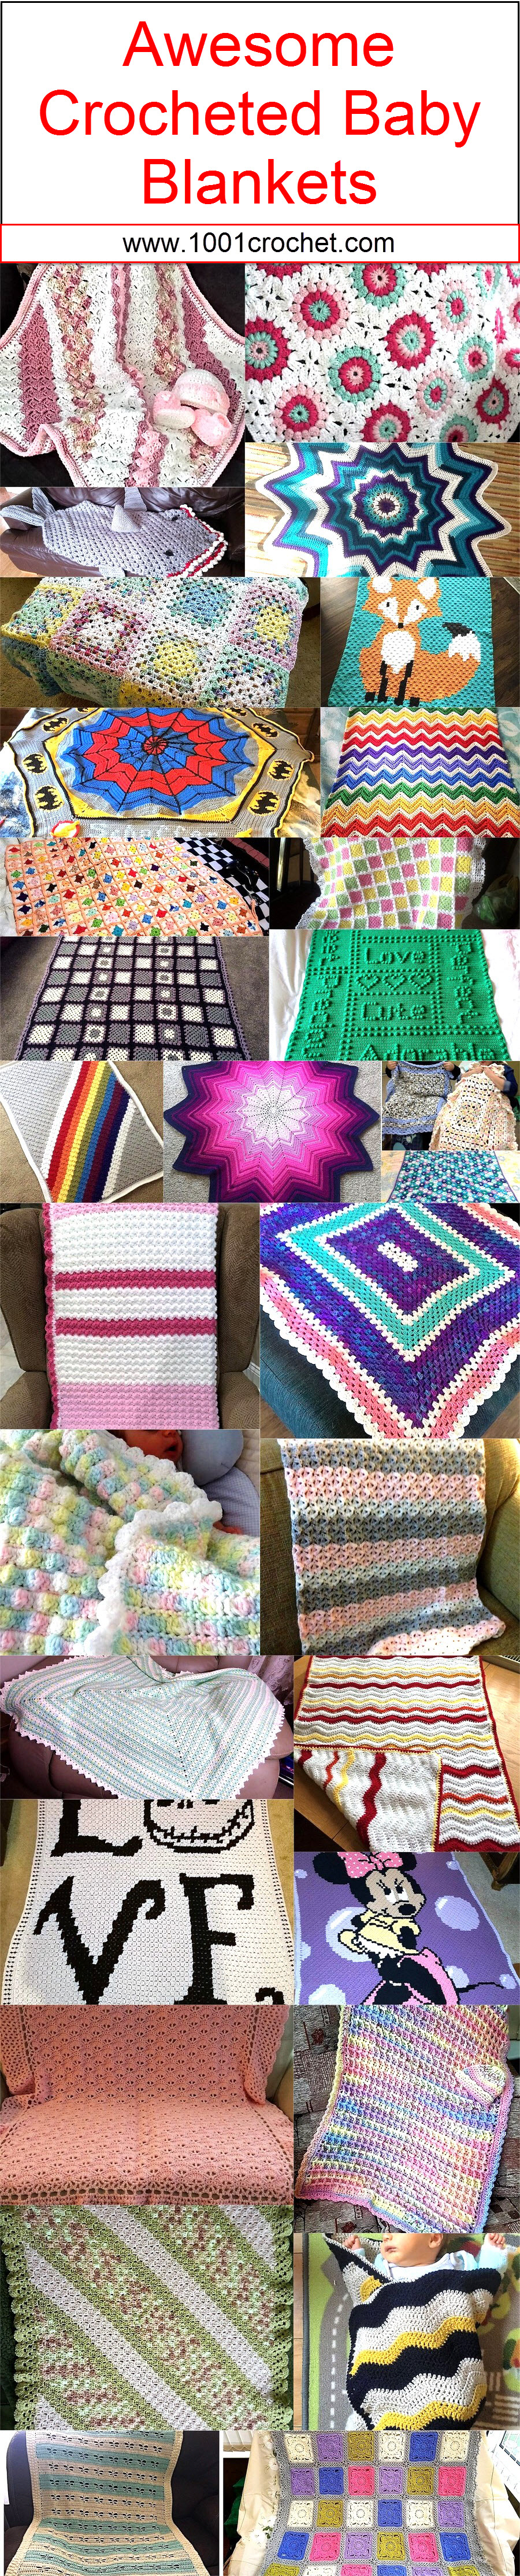 awesome-crocheted-baby-blankets